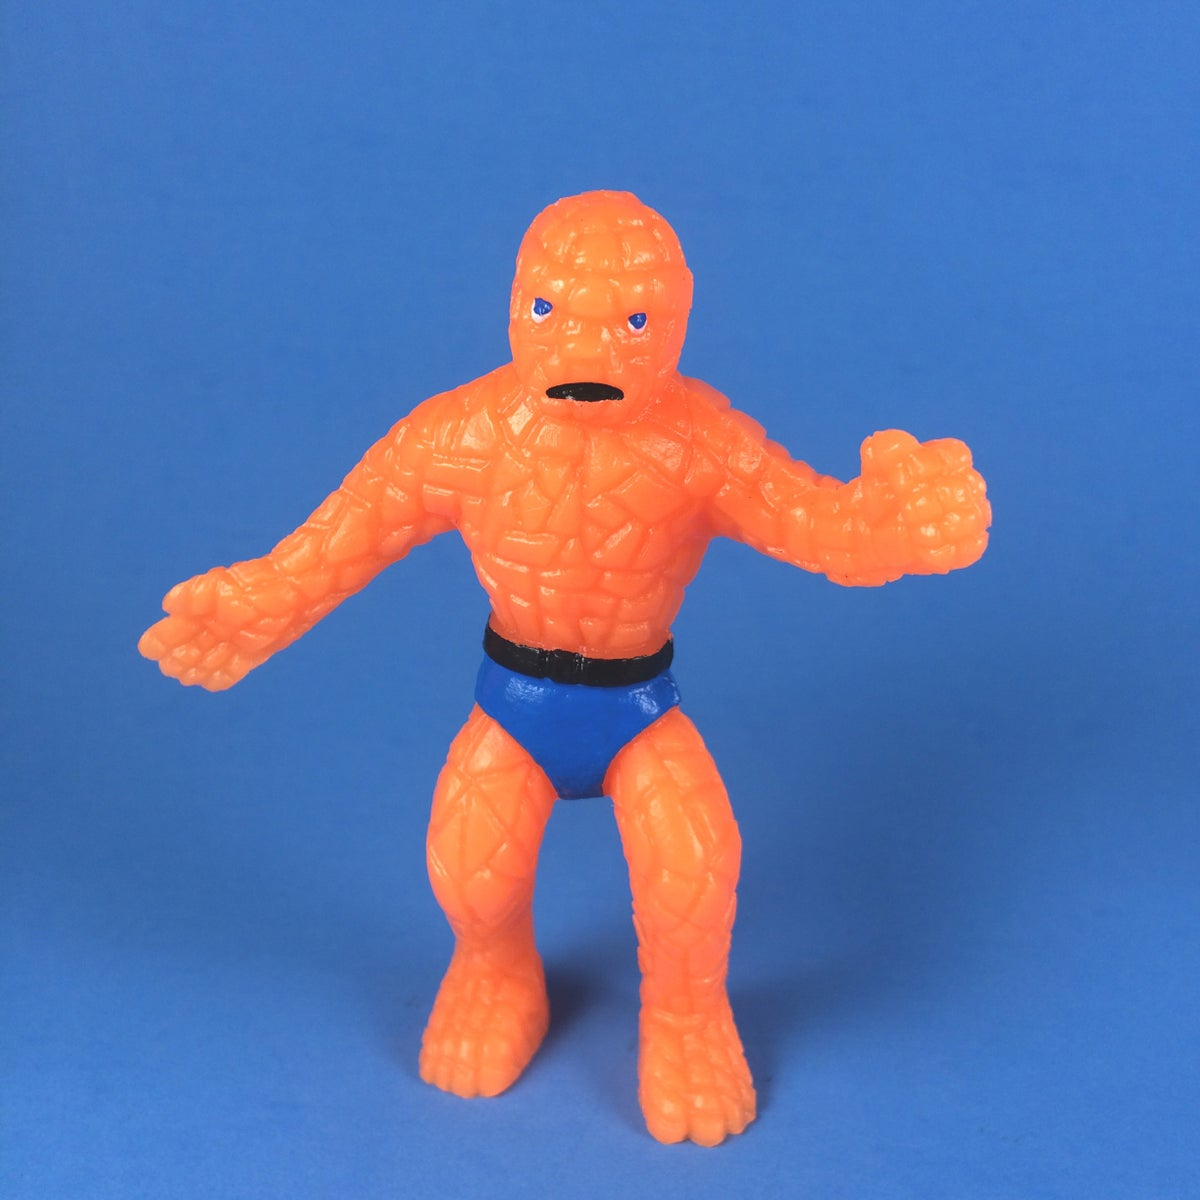 Image of The Thing bootleg art toy